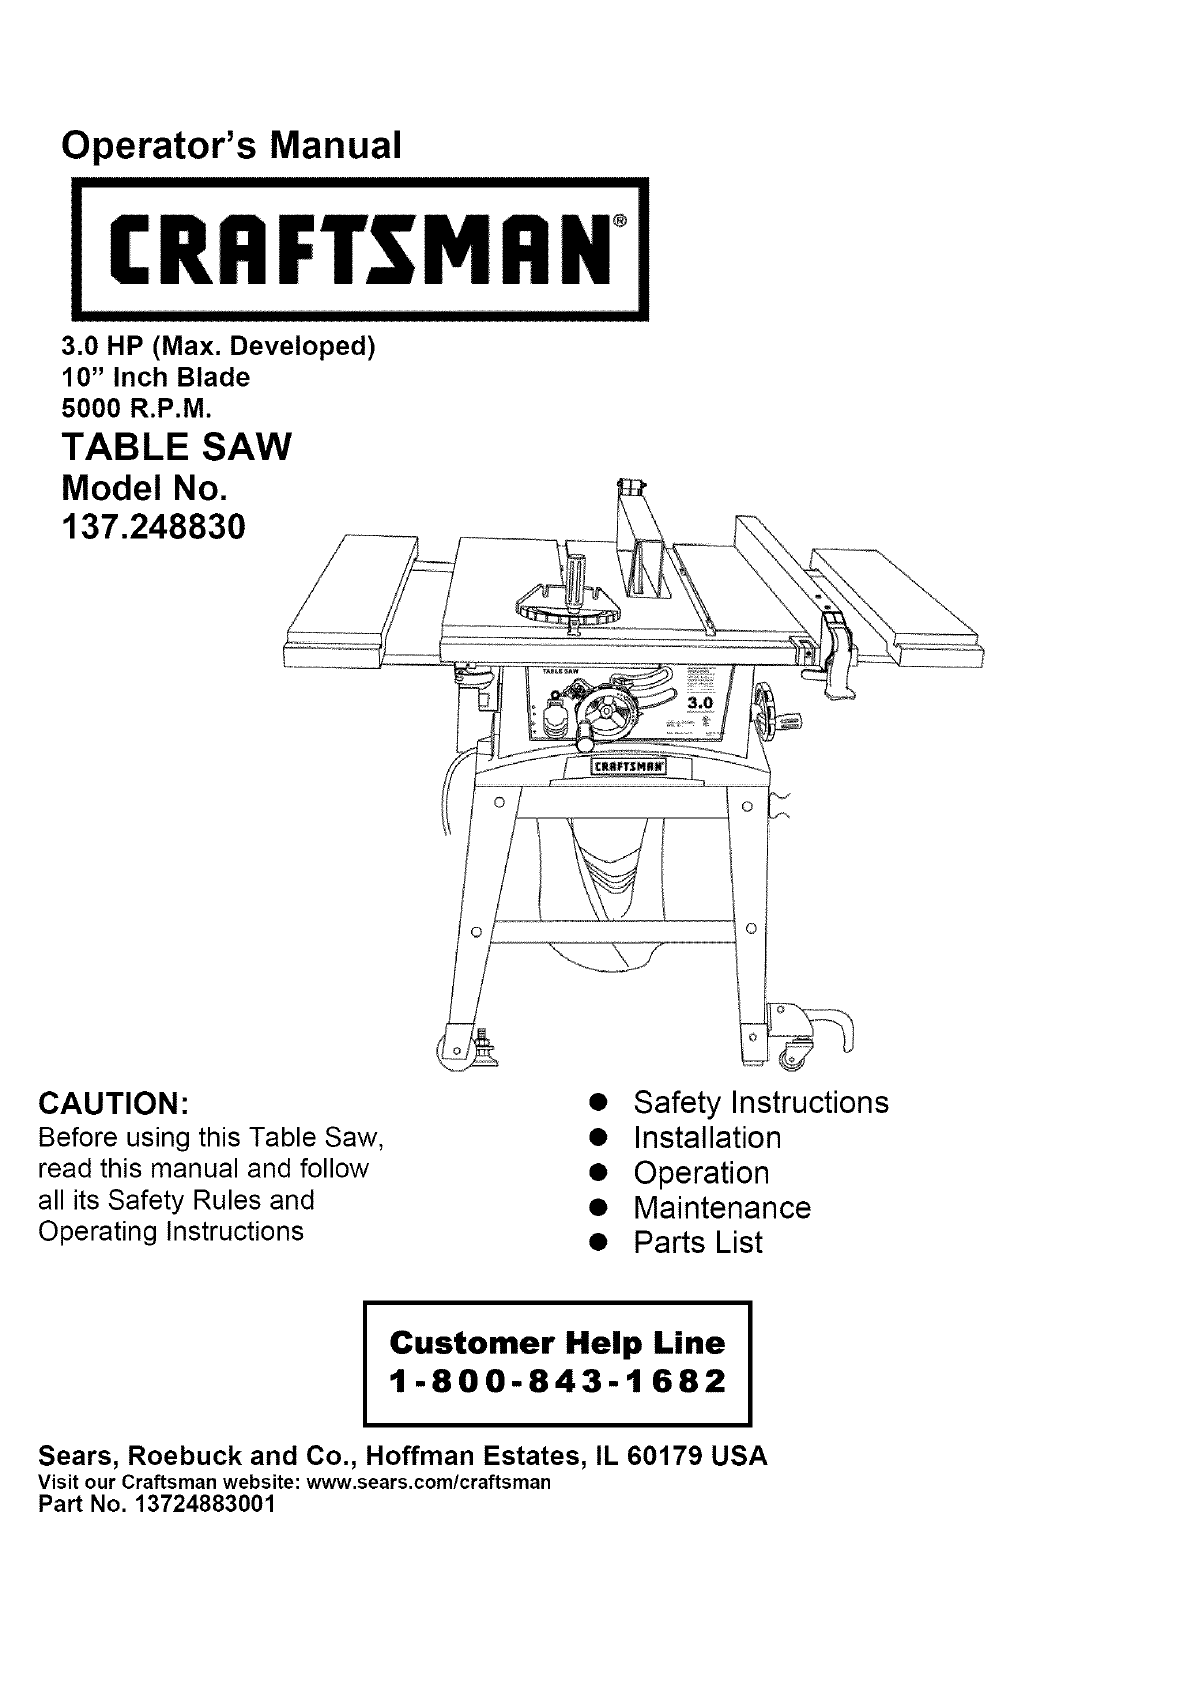 e99c86ed 3ba5 4bb5 a567 3b4fffebfc1f bg1 craftsman saw 137 248830 user guide manualsonline com Sears Craftsman 10 Inch Table Saw at gsmx.co